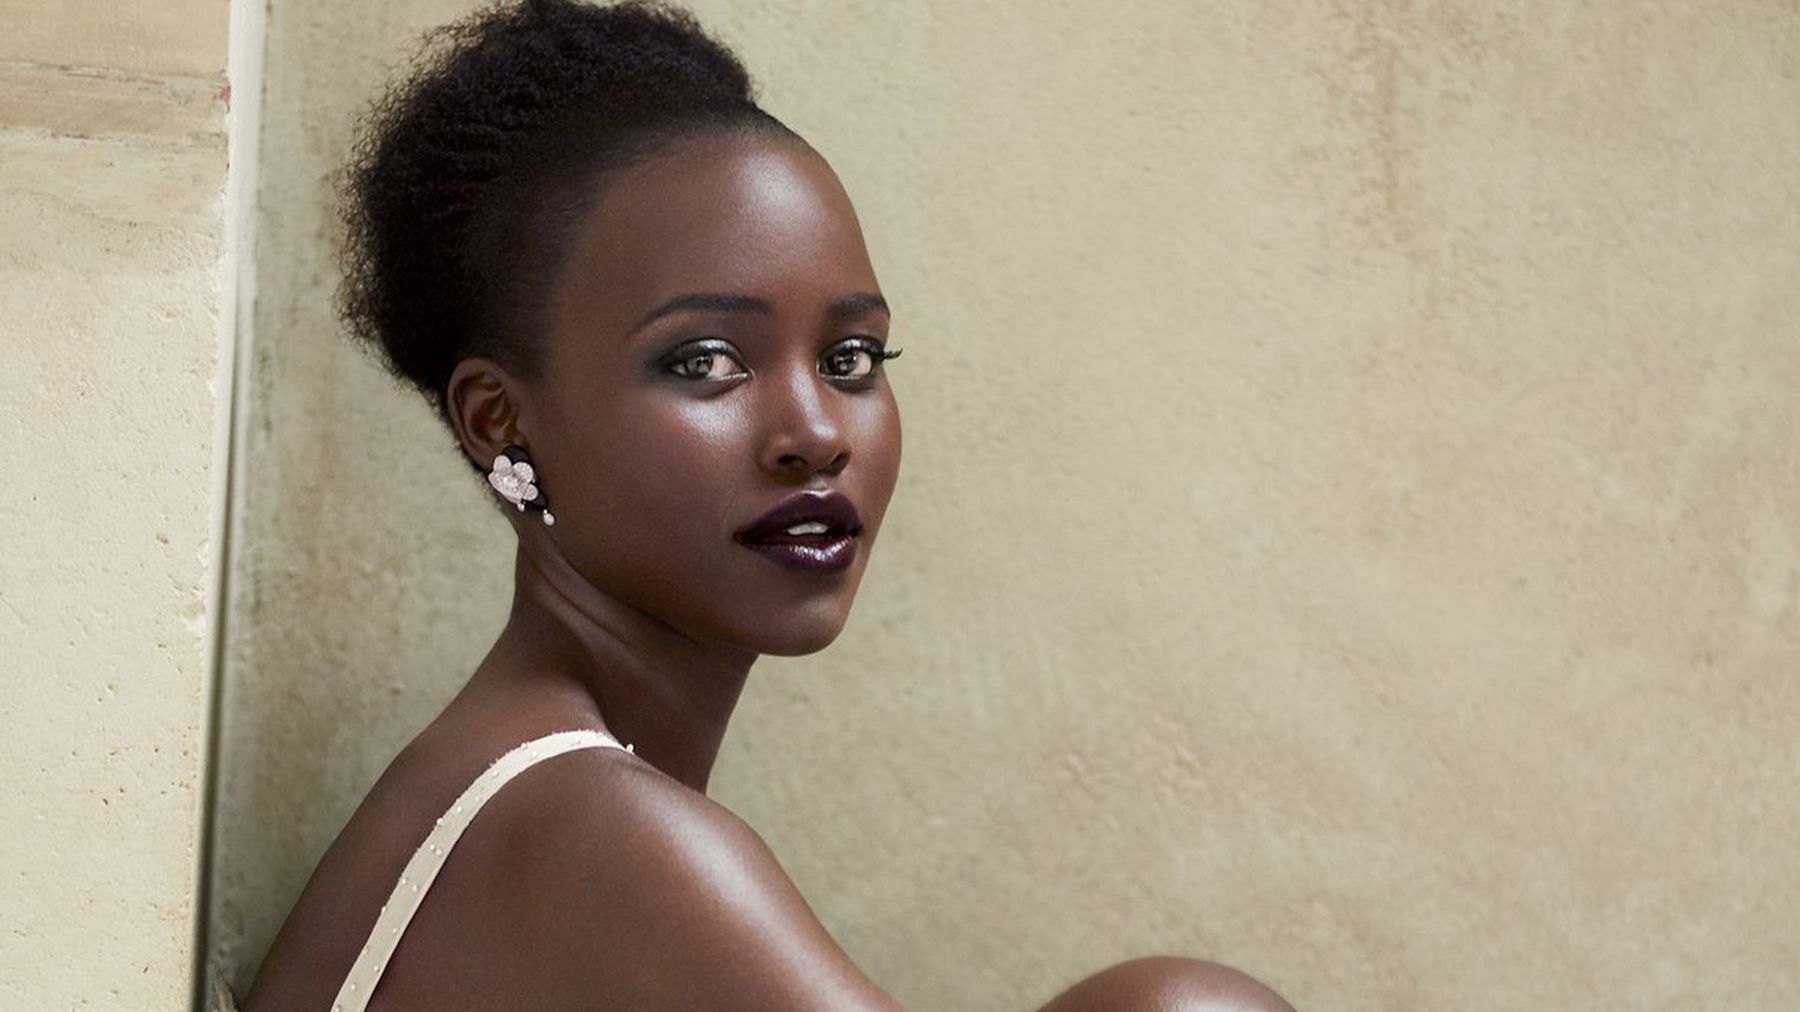 """Lupita Nyong'o  is gearing up for her biggest role of the year in what will probably be the biggest film of the year, """"Star Wars: The Force Awakens."""" Before it hits theaters in December, though, she's keeping herself busy by landing her   second cover  of   Vogue  . NBD."""